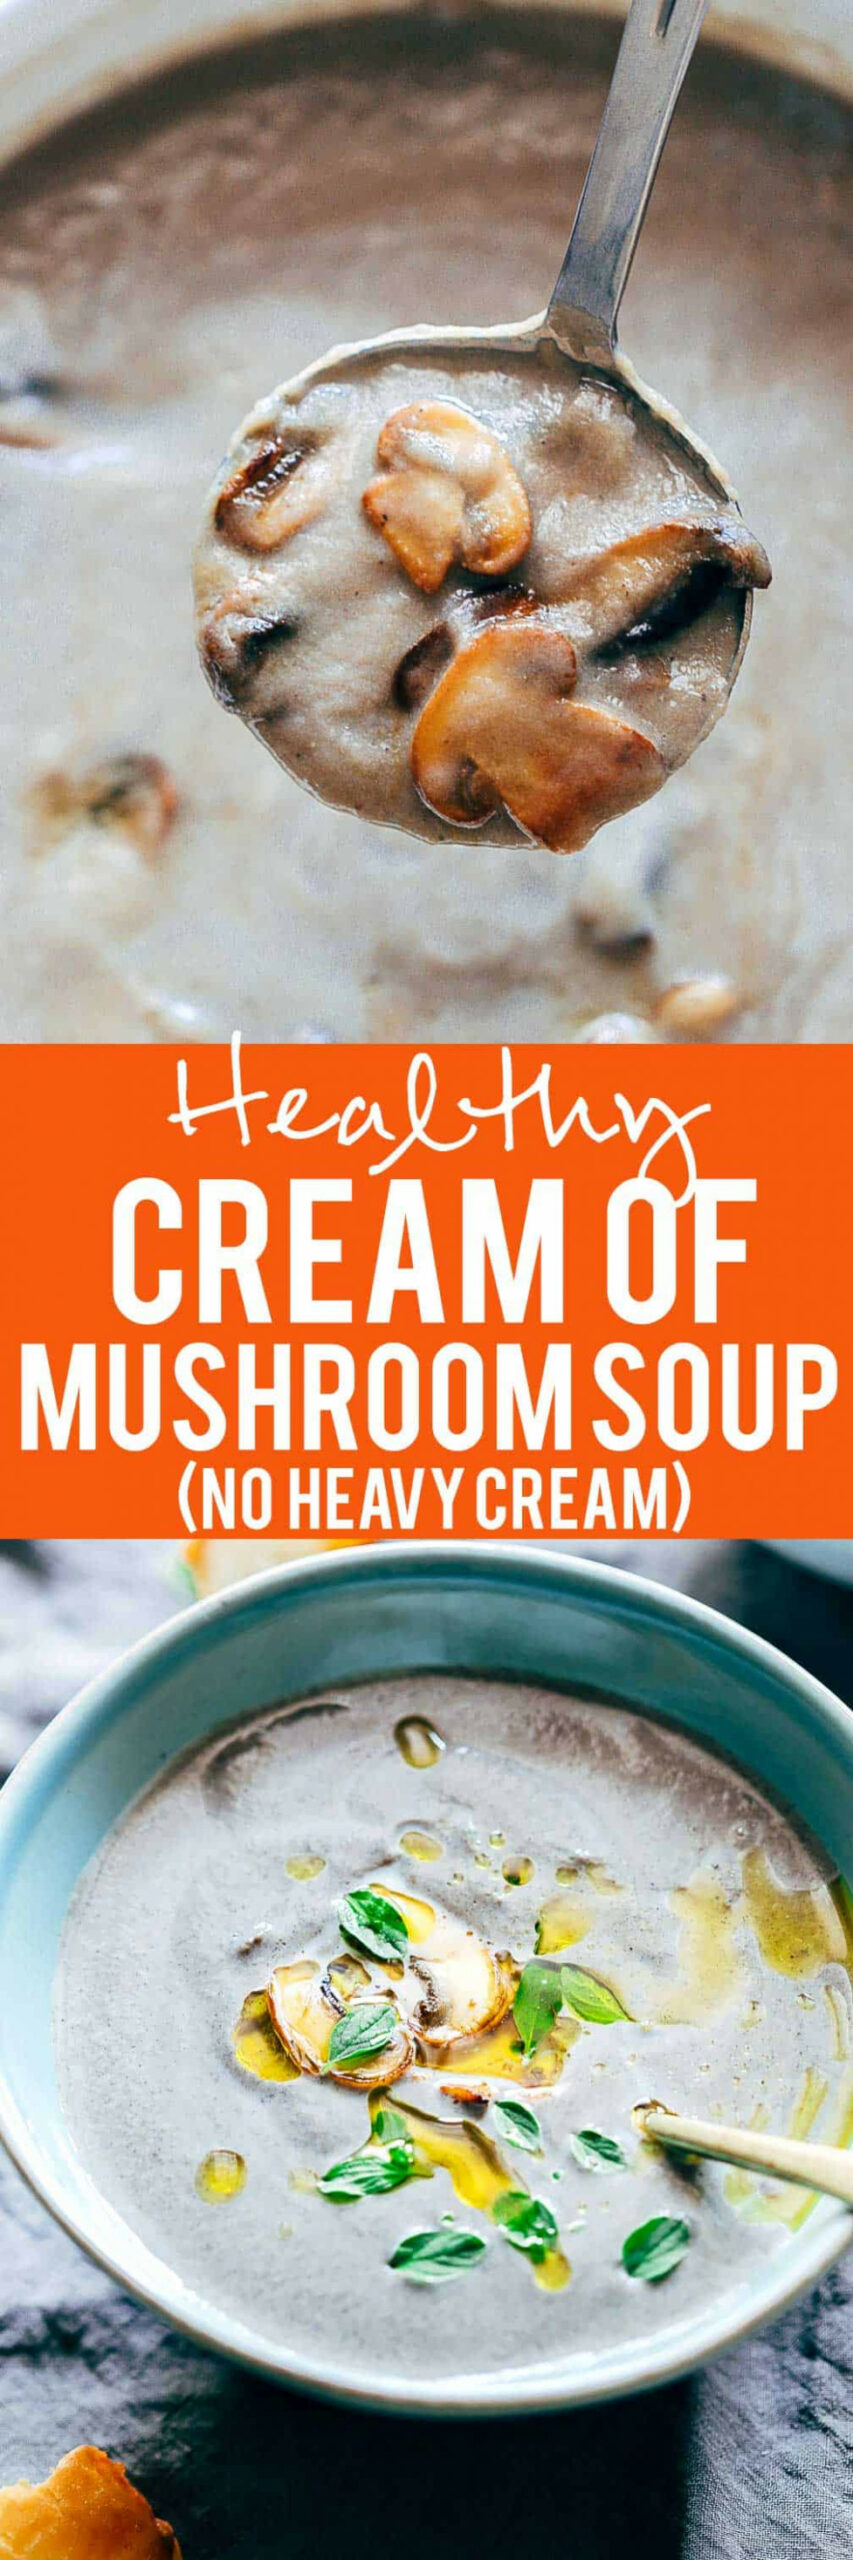 Healthy Cream of Mushroom Soup (Pressure Cooker Recipe) - healthy recipes in pressure cooker